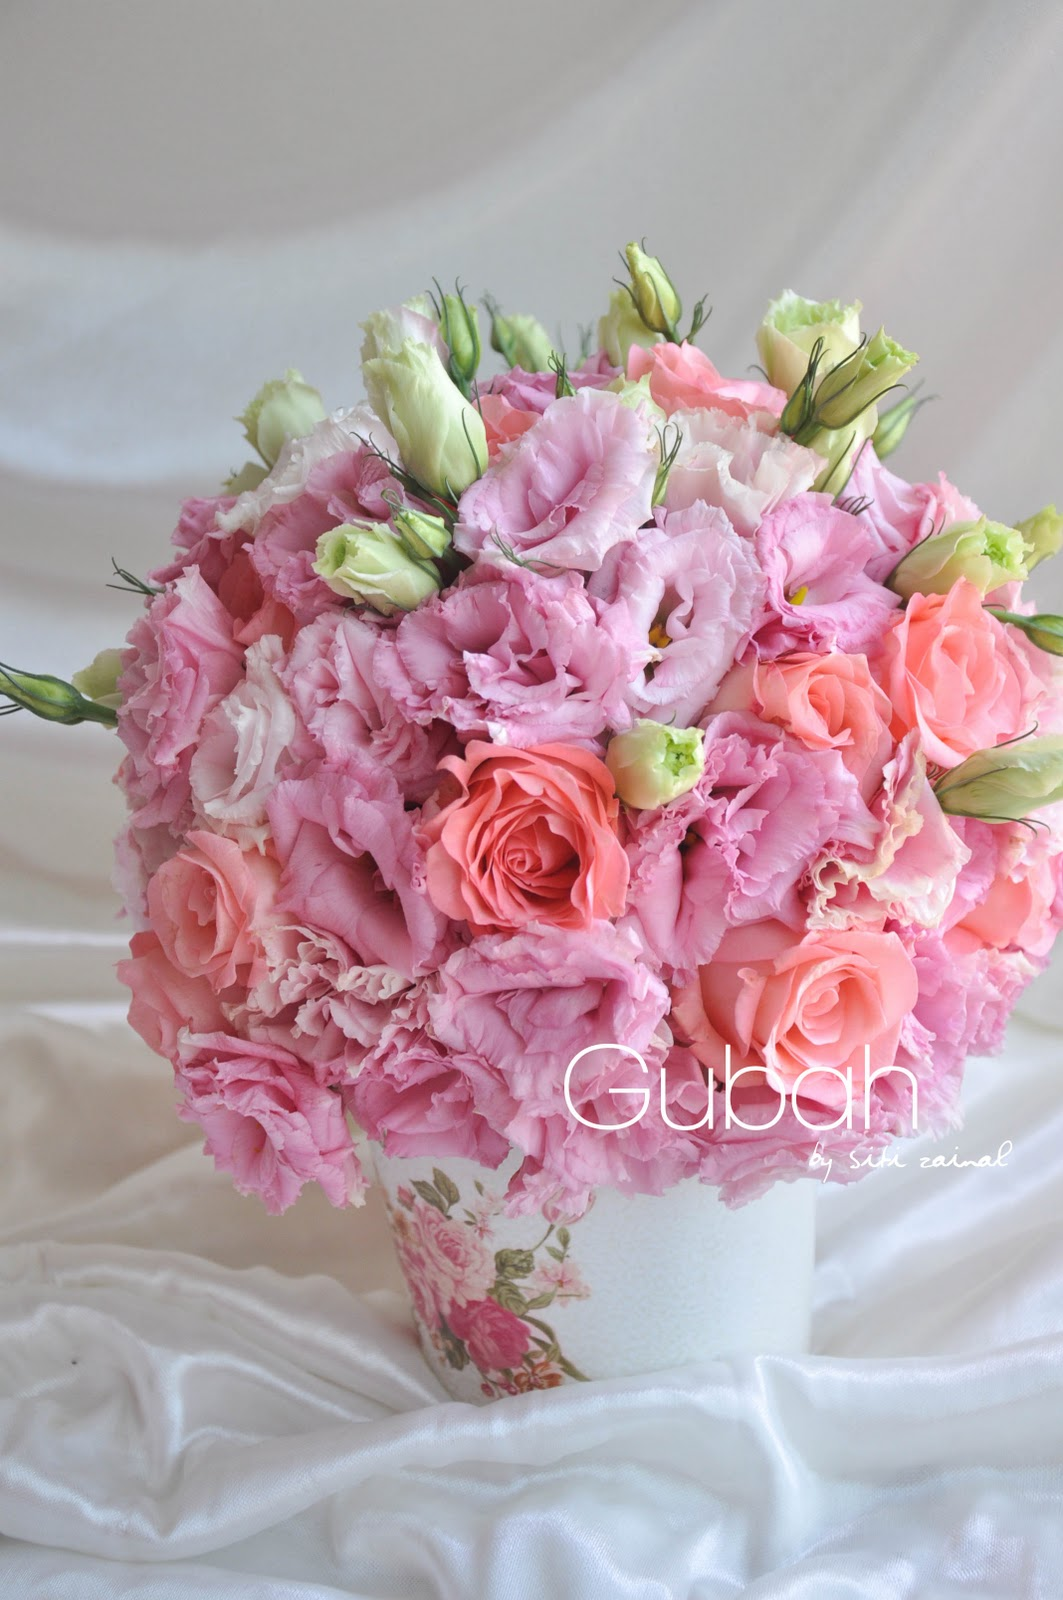 Hand bouquet fresh flower picture hand bouquets debby fresh cut hand bouquets debby hand bouquets debby hand bouquet fresh flower izmirmasajfo Choice Image